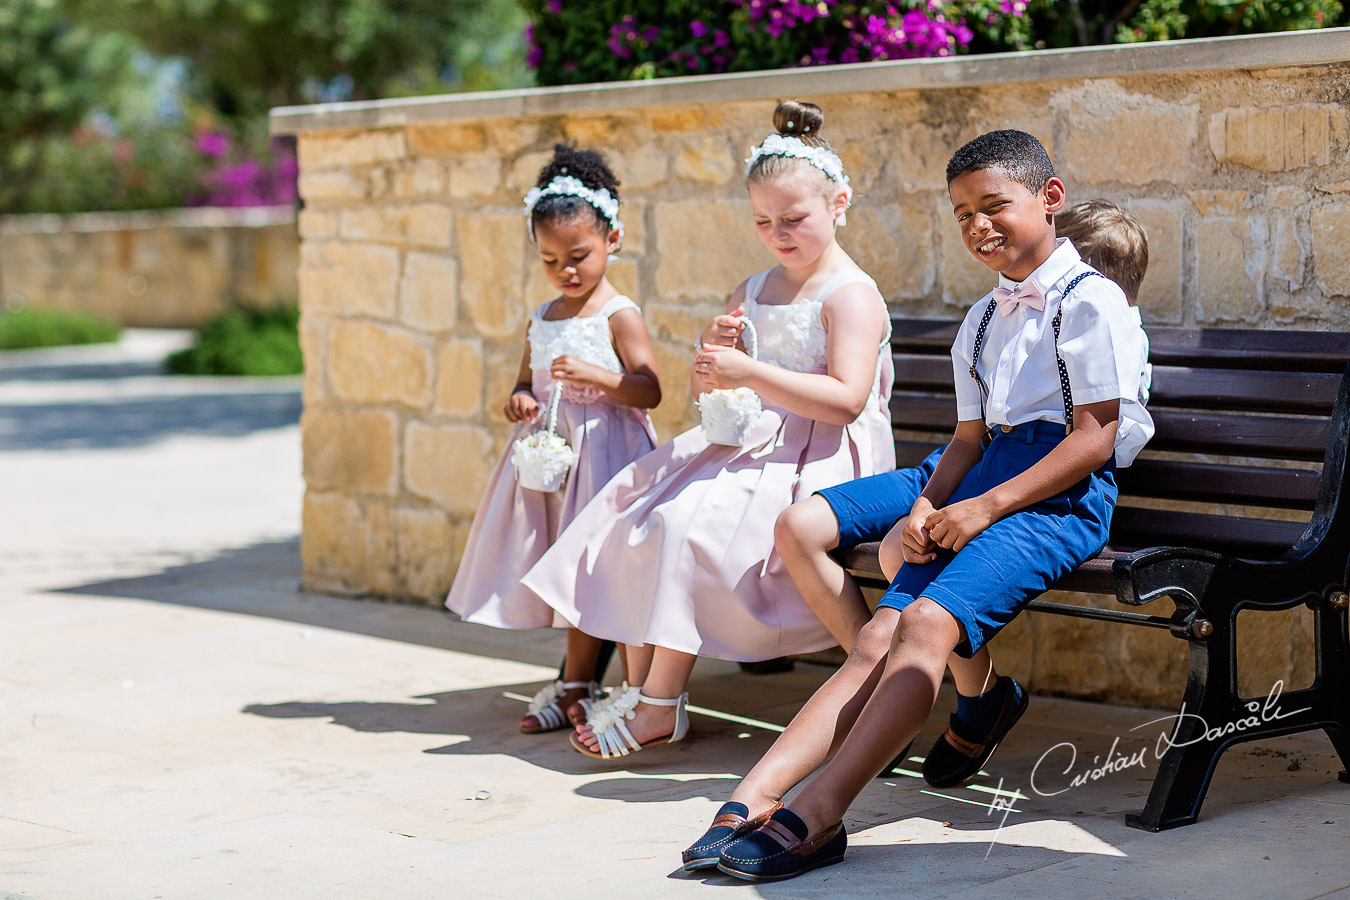 Moments with pageboys and flowergirls captured during a wedding at Aphrodite Hills Resort in Cyprus by Cyprus Photographer Cristian Dascalu.